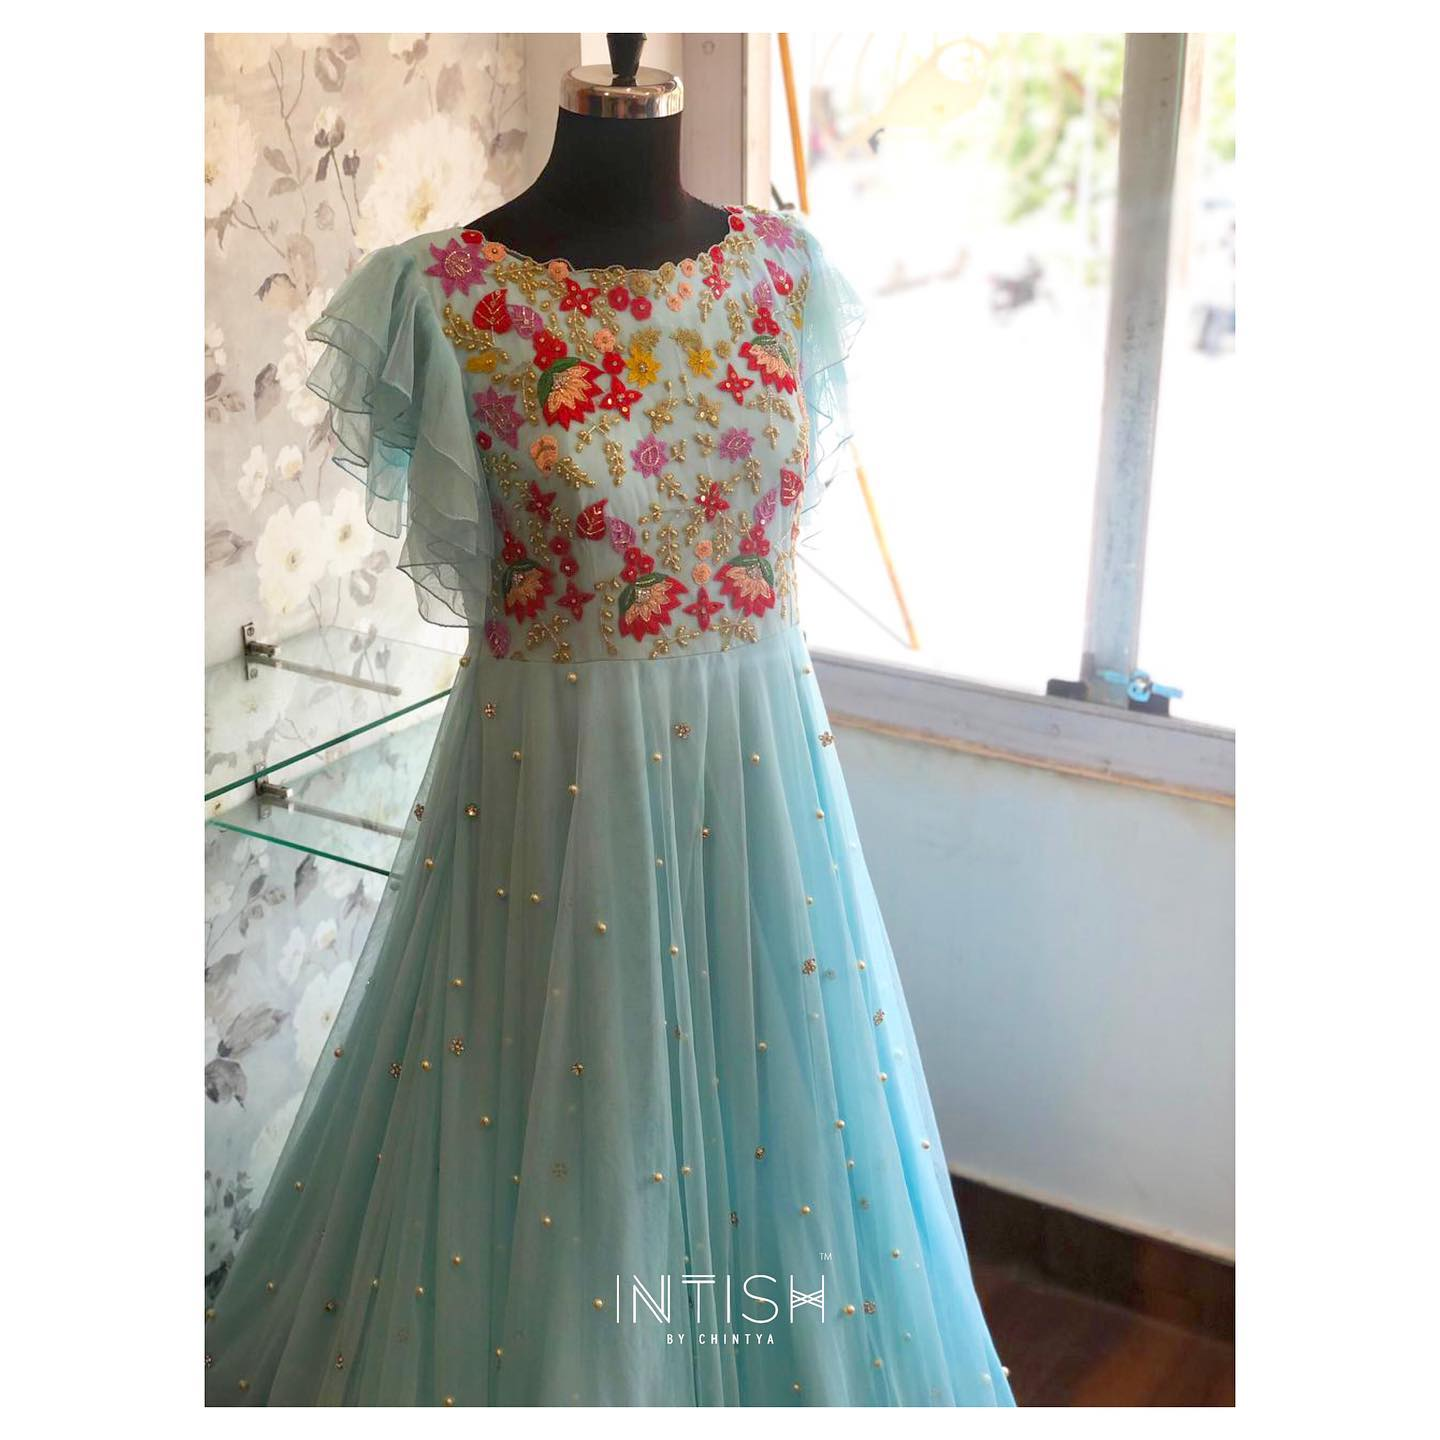 lutters. Colours. Tulle. The things dreams are made of. Tulle floor length gown with hand embroidery work on yoke.  2021-05-11